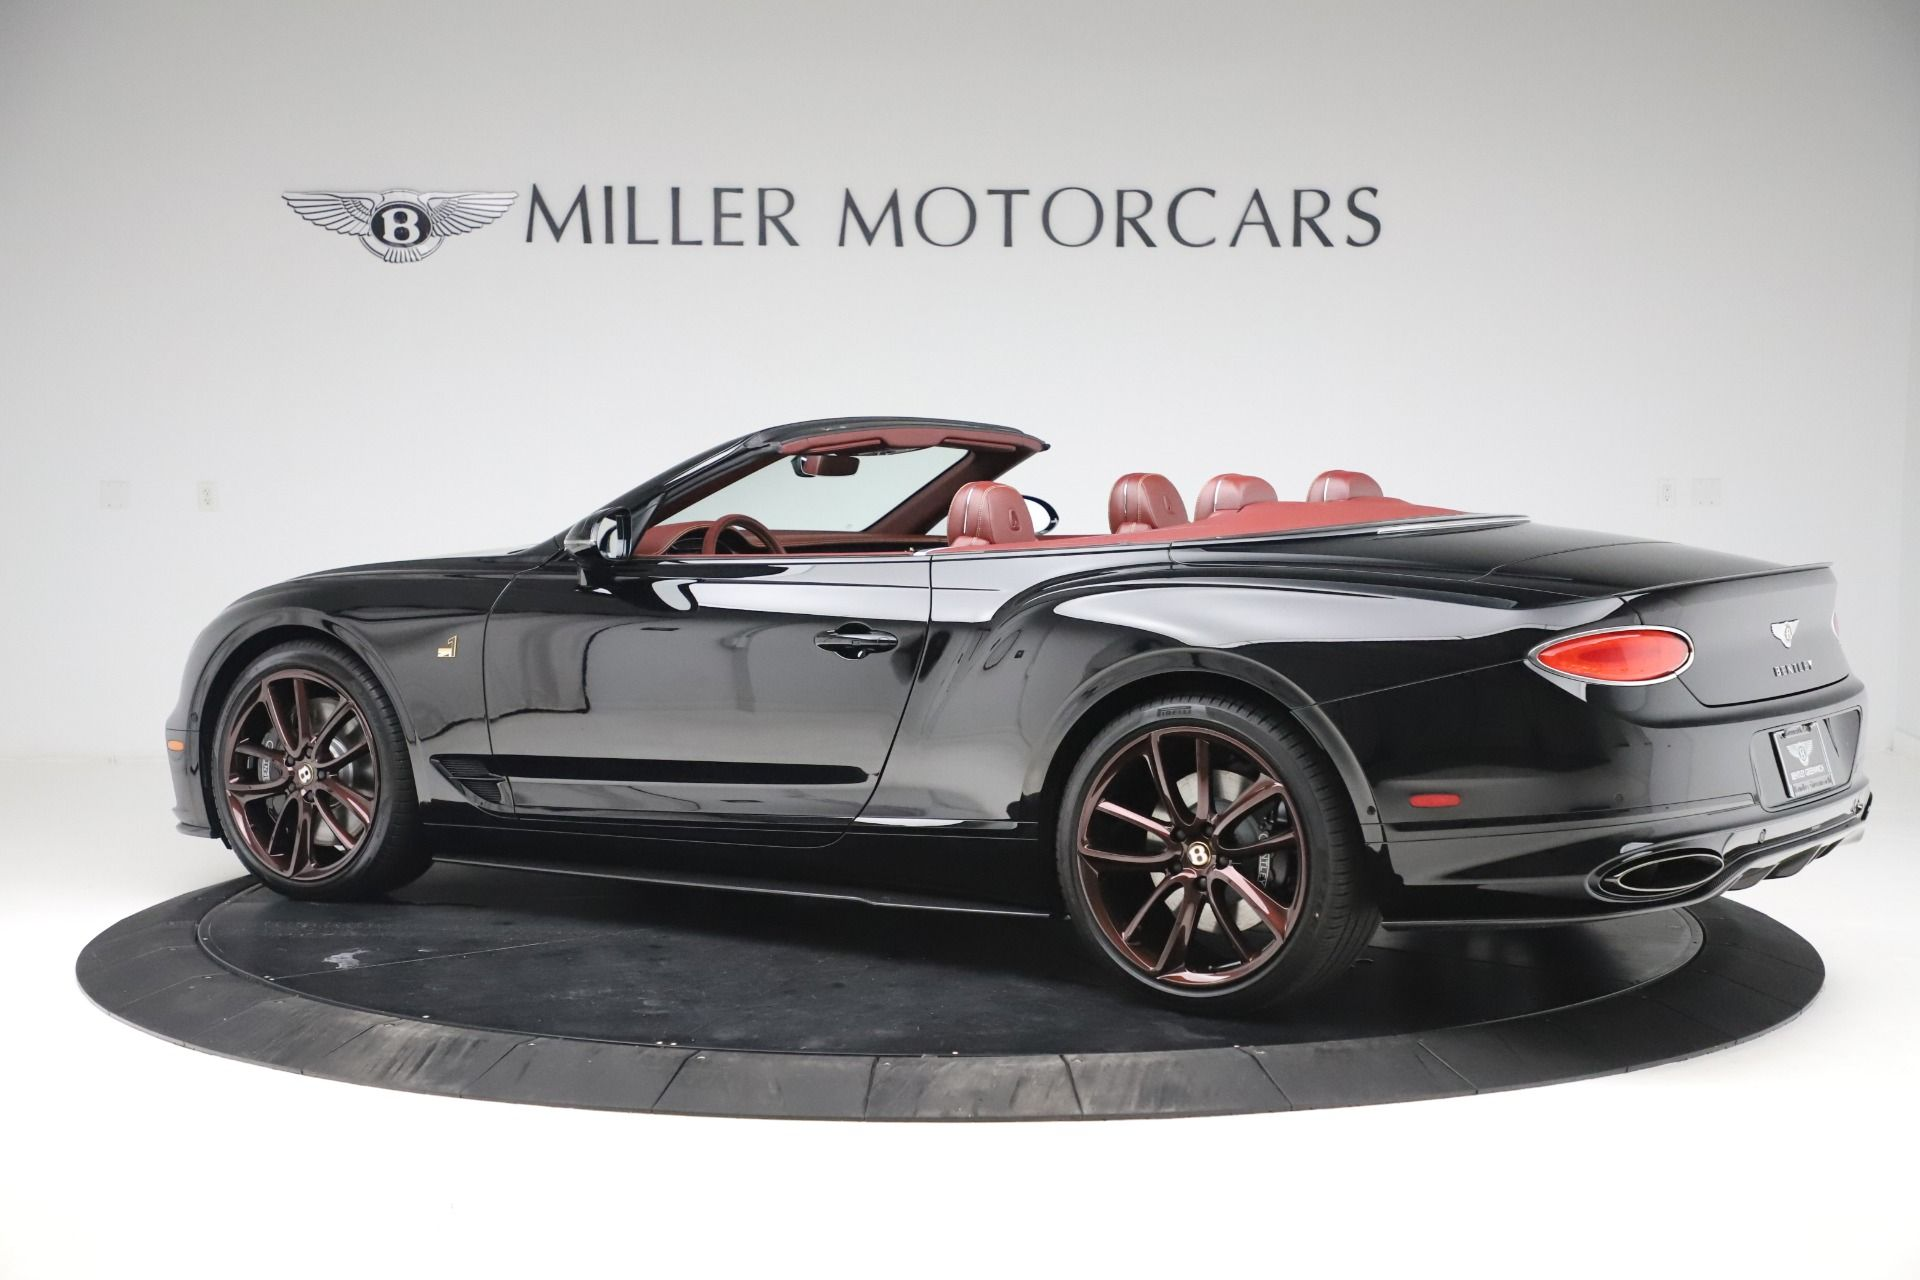 2020 Bentley Continental Gtc Number 1 Edition Miller Motorcars United States For Sale On Luxurypulse In 2020 Bentley Continental Bentley Bentley Continental Gt